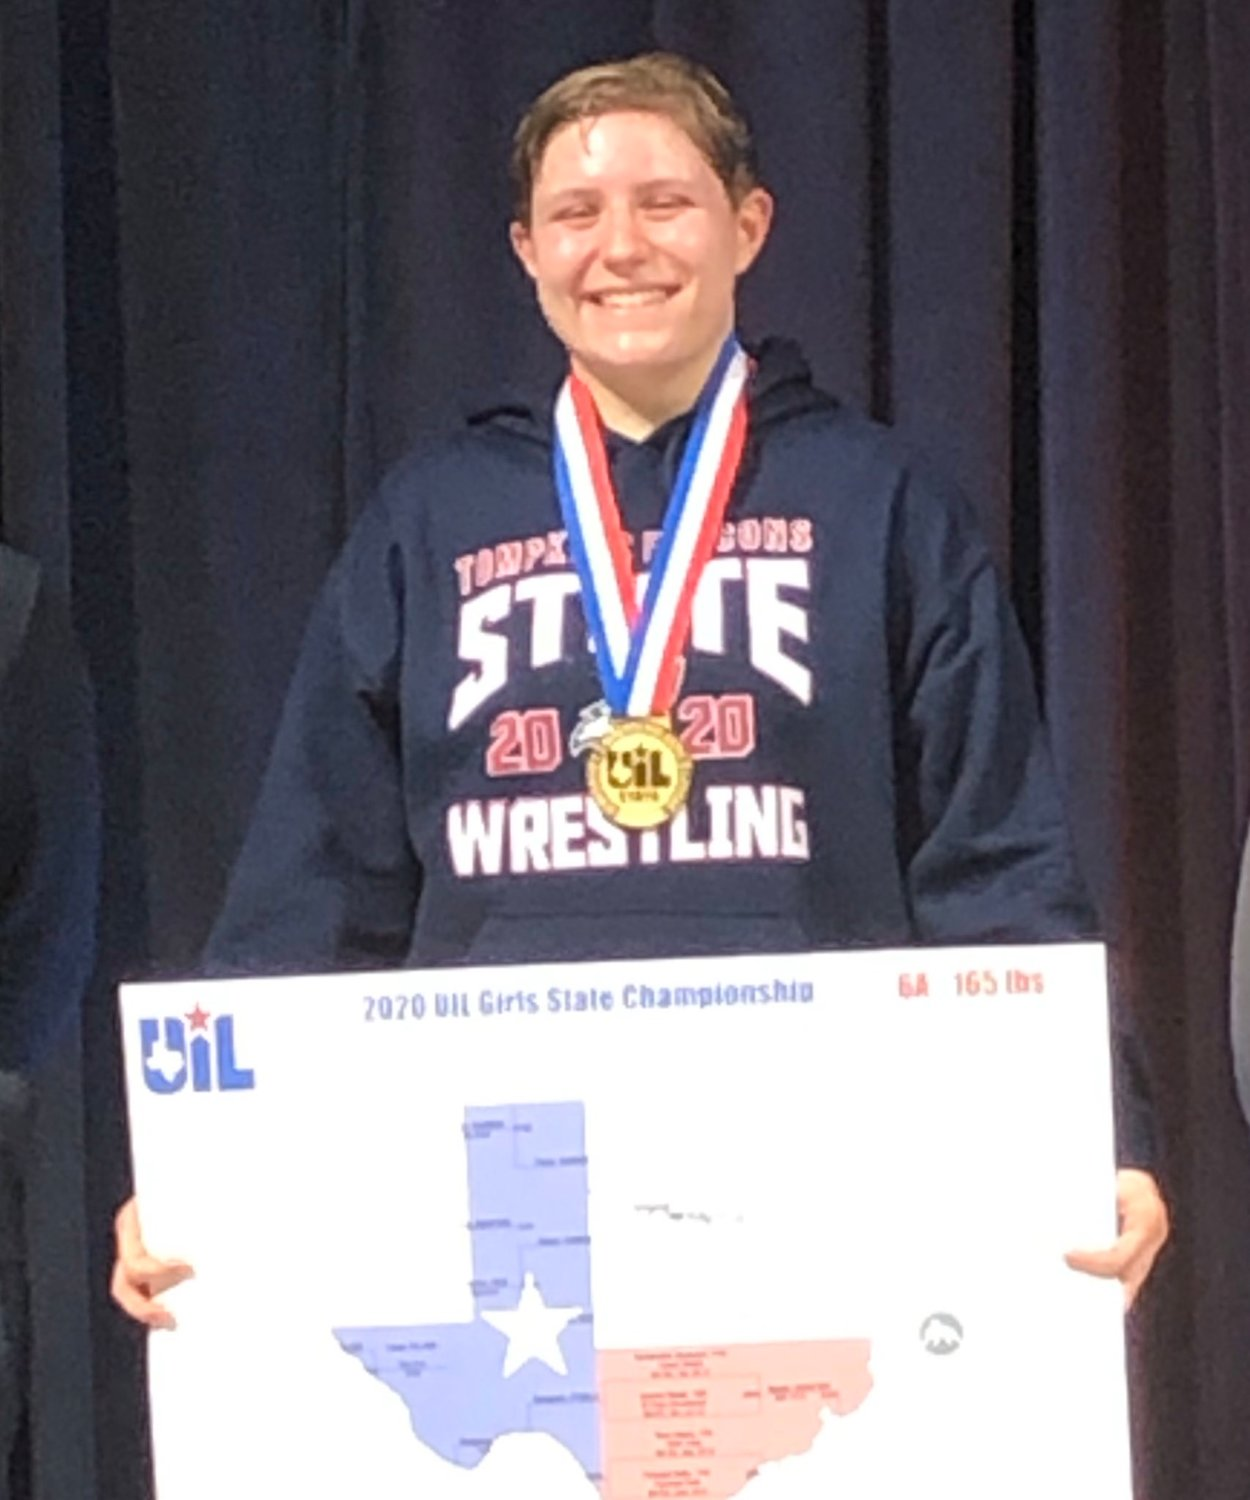 Tompkins senior Kaitlyn Bryant won her 165-pound class at the UIL Class 6A state tournament on Feb. 22 and wrapped up her season with a flawless 44-0 overall record. She is the Falcons' first wrestling state champion.